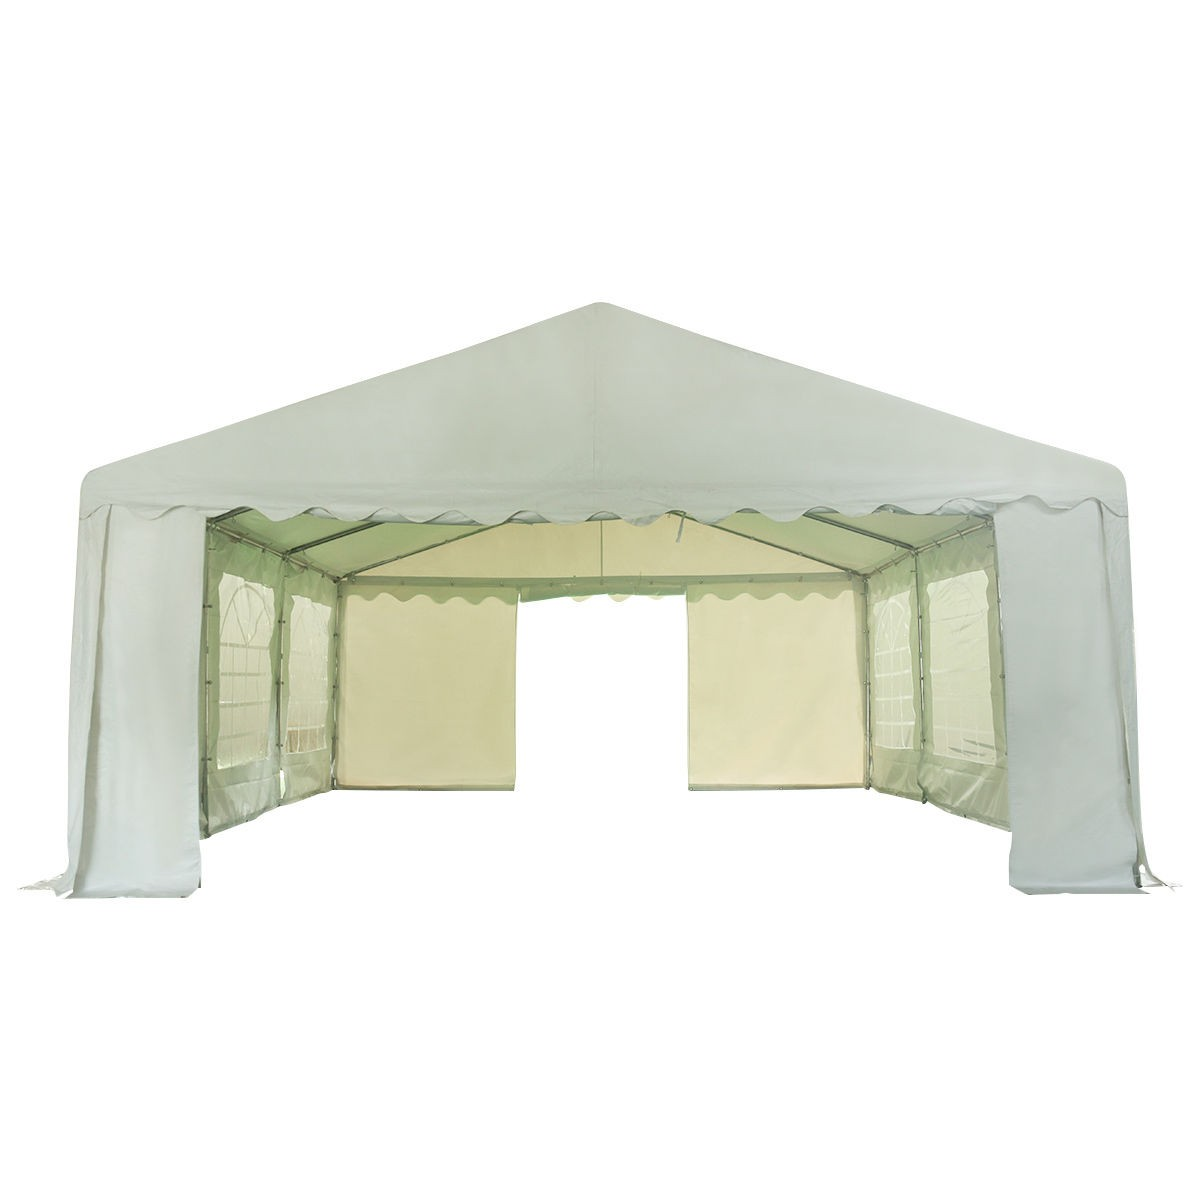 ... Set include One 16u0027 x 20u0027 PVC tent  sc 1 st  eBay & 16u0027 x 20u0027 PVC Heavy Duty Outdoor Garden Home Party Wedding Canopy ...